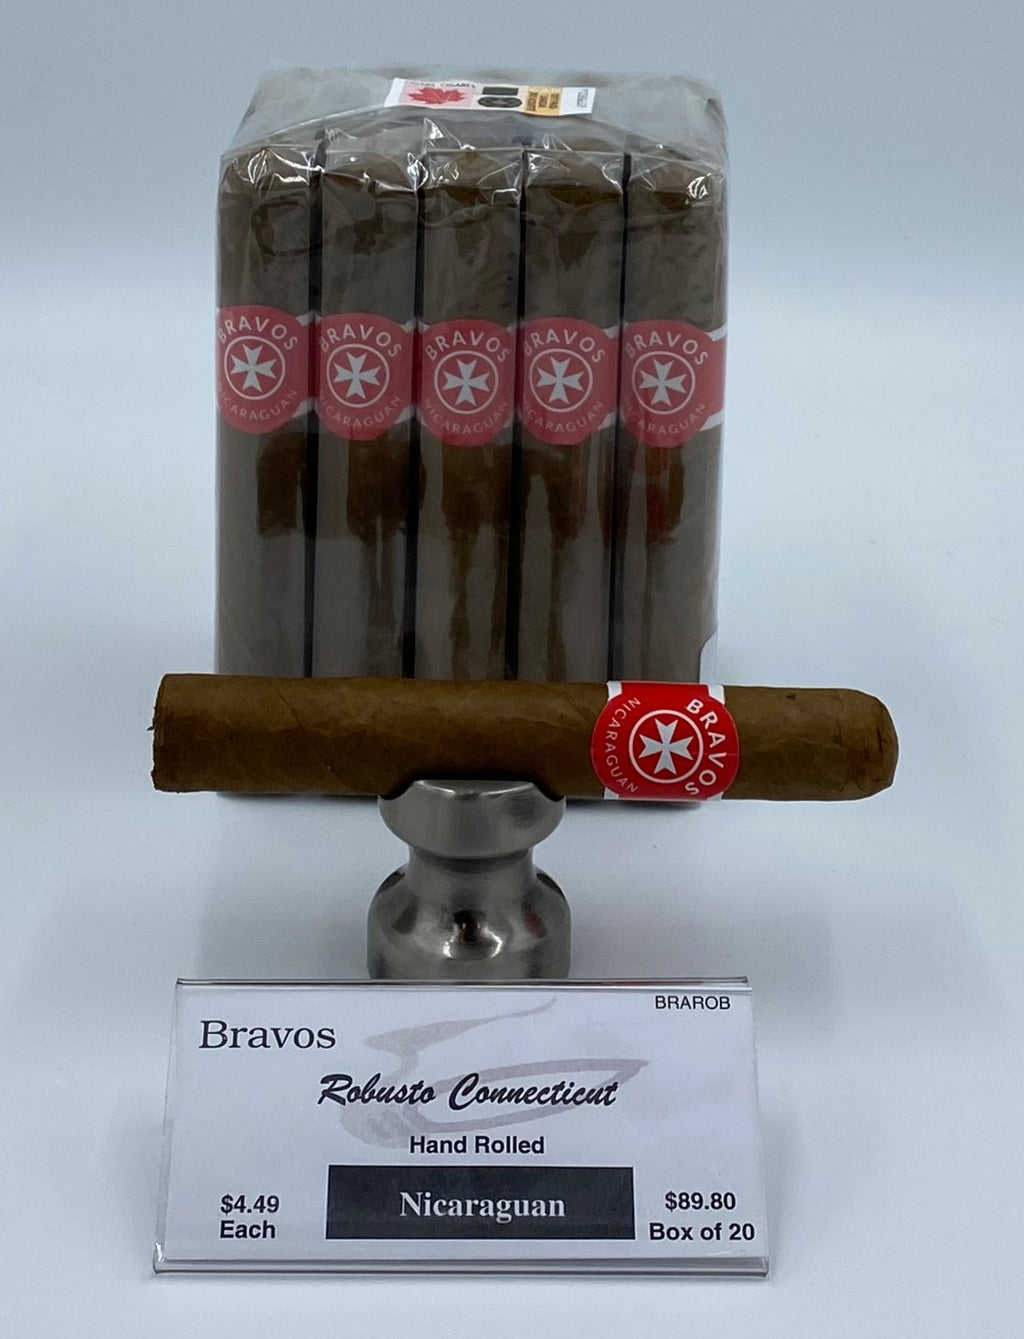 A BUNDLE OF 20 Bravos Robusto Connecticut...SAVE 10%....Sorry NOT eligible for FREE mail order shipping.